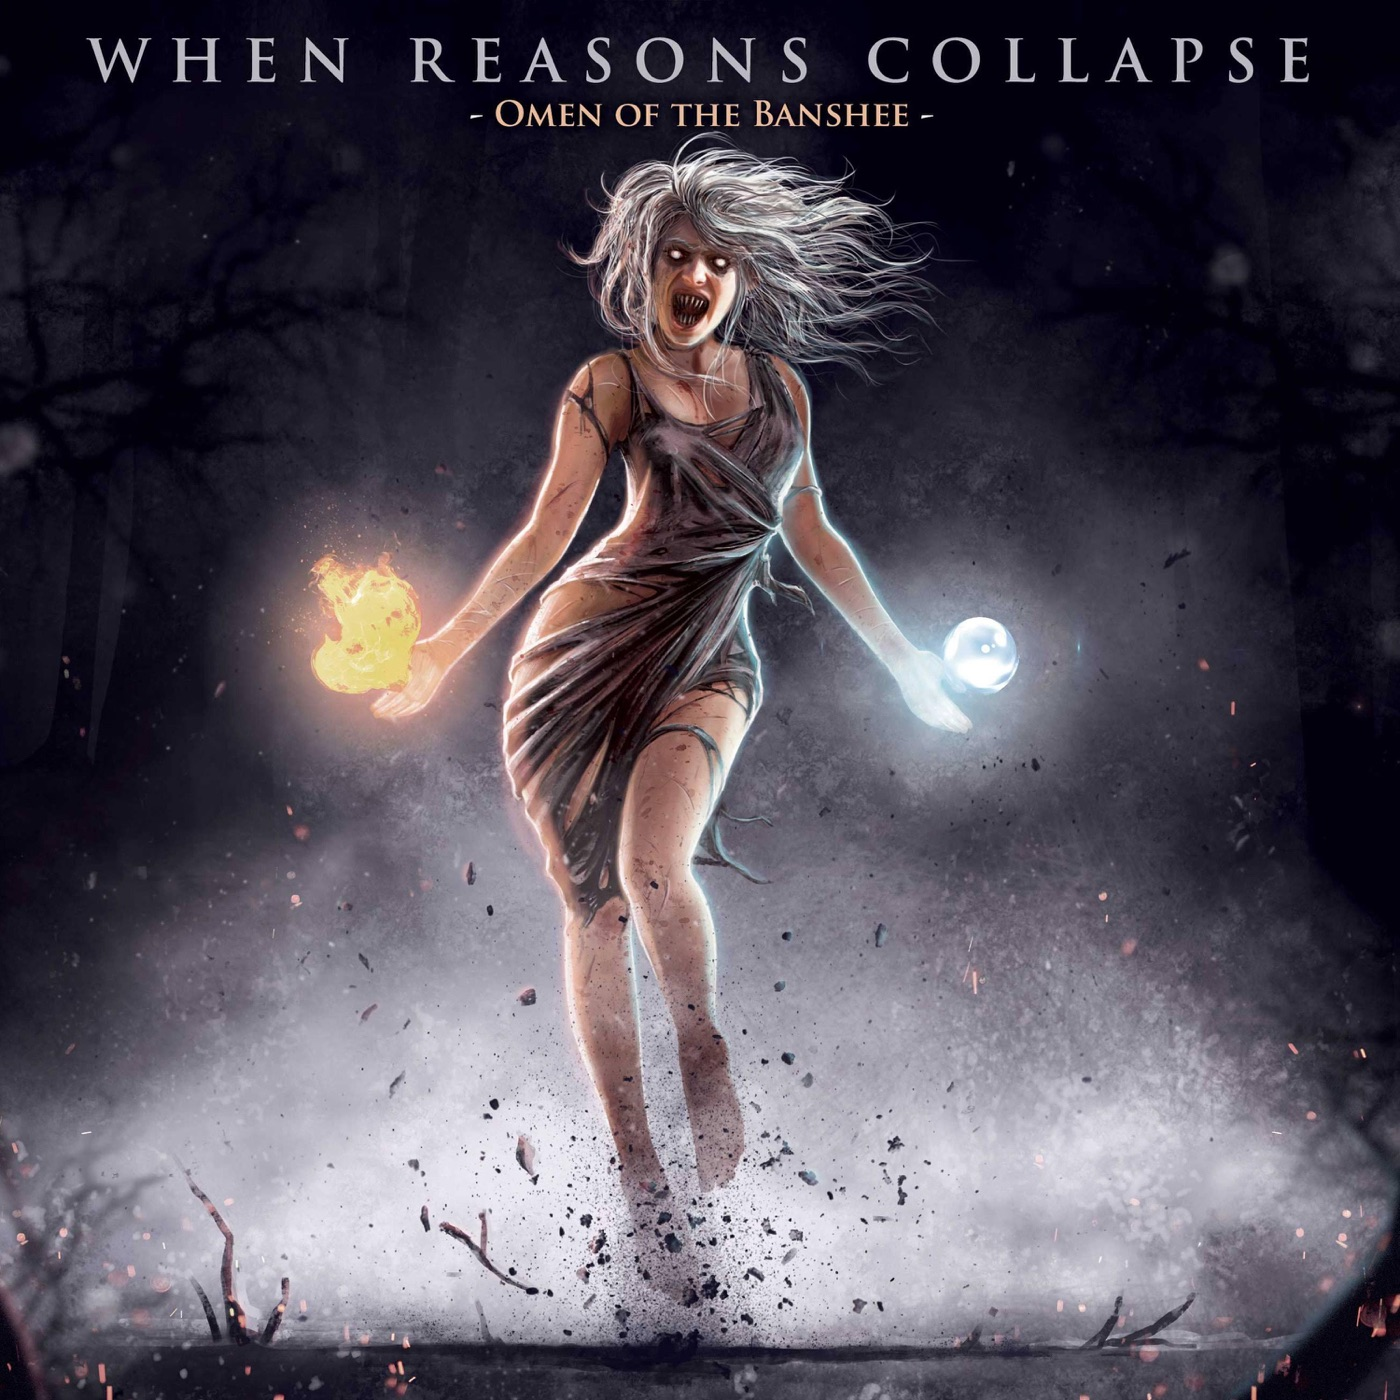 When Reasons Collapse - Omen of the Banshee (2018)